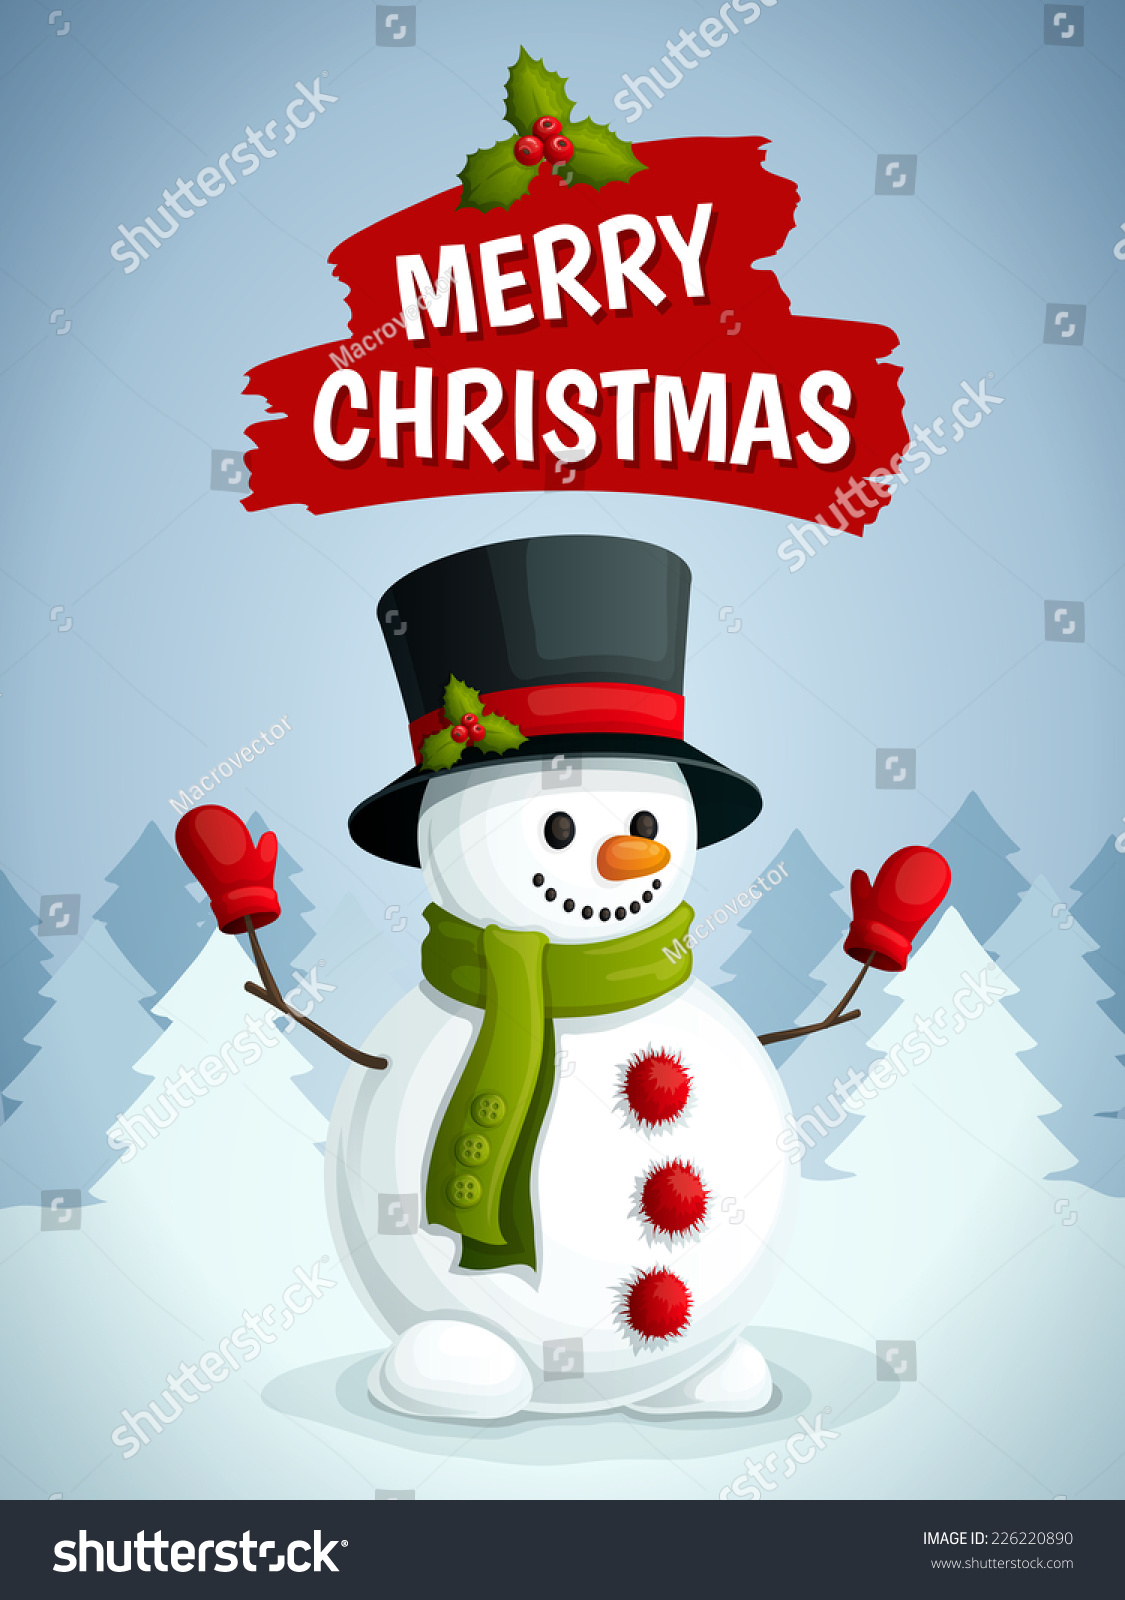 Merry Christmas Poster With Snowman In Scarf Gloves And Hat On ...